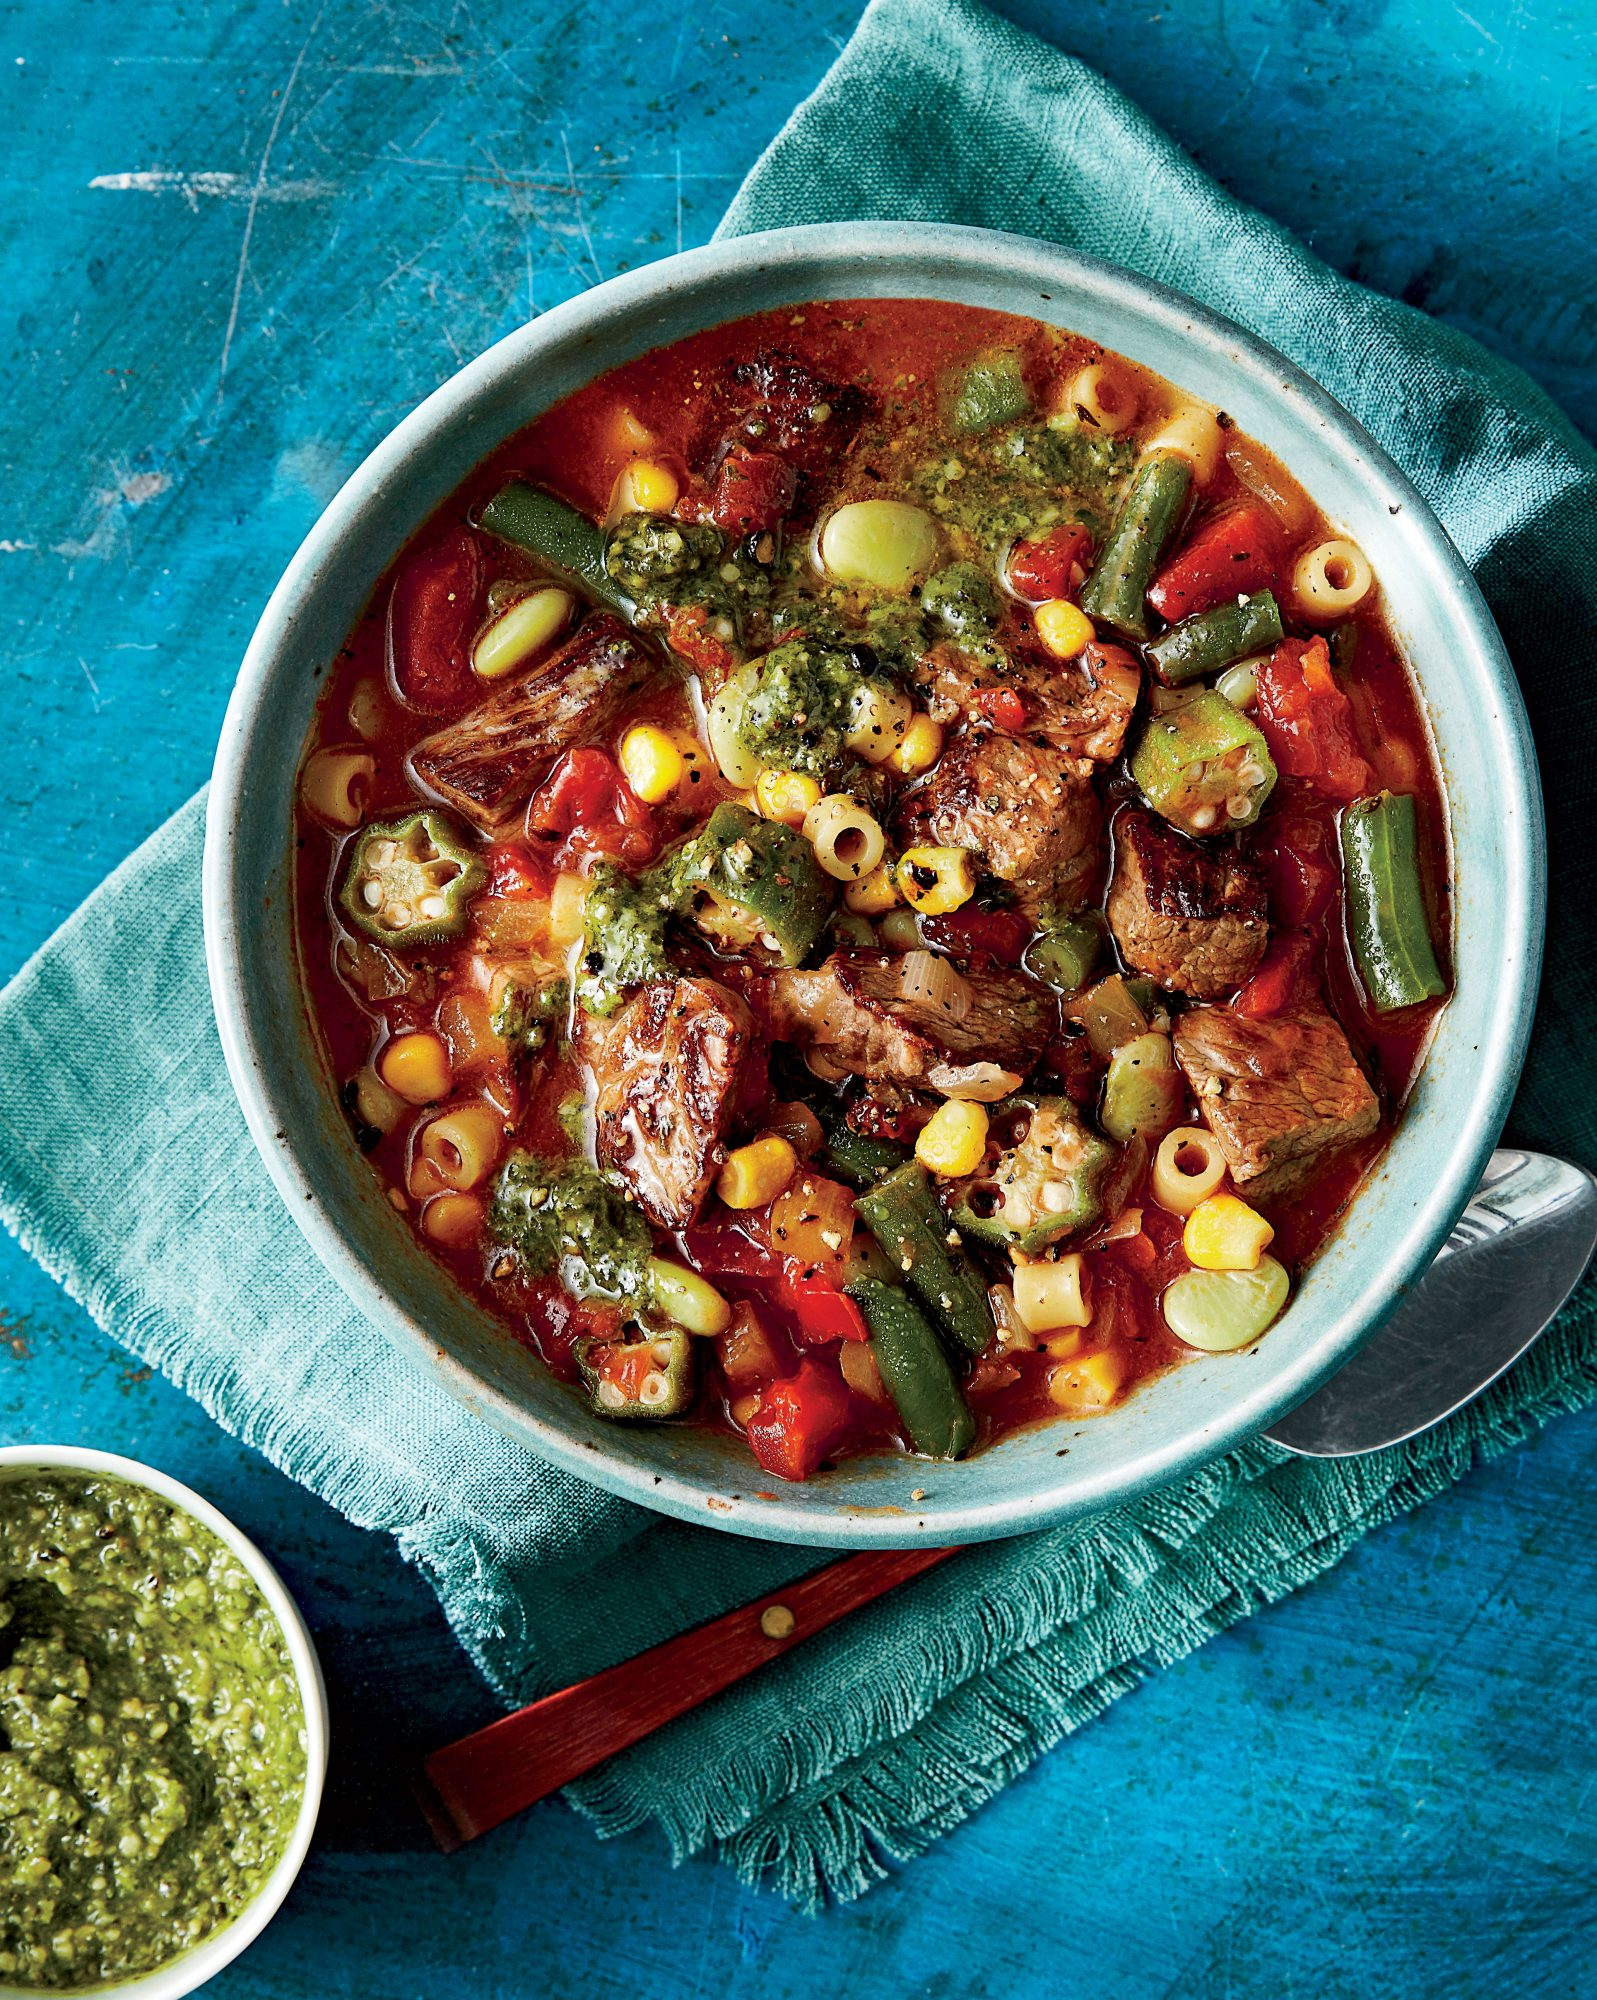 Hearty Beef and Freezer Veggie Soup